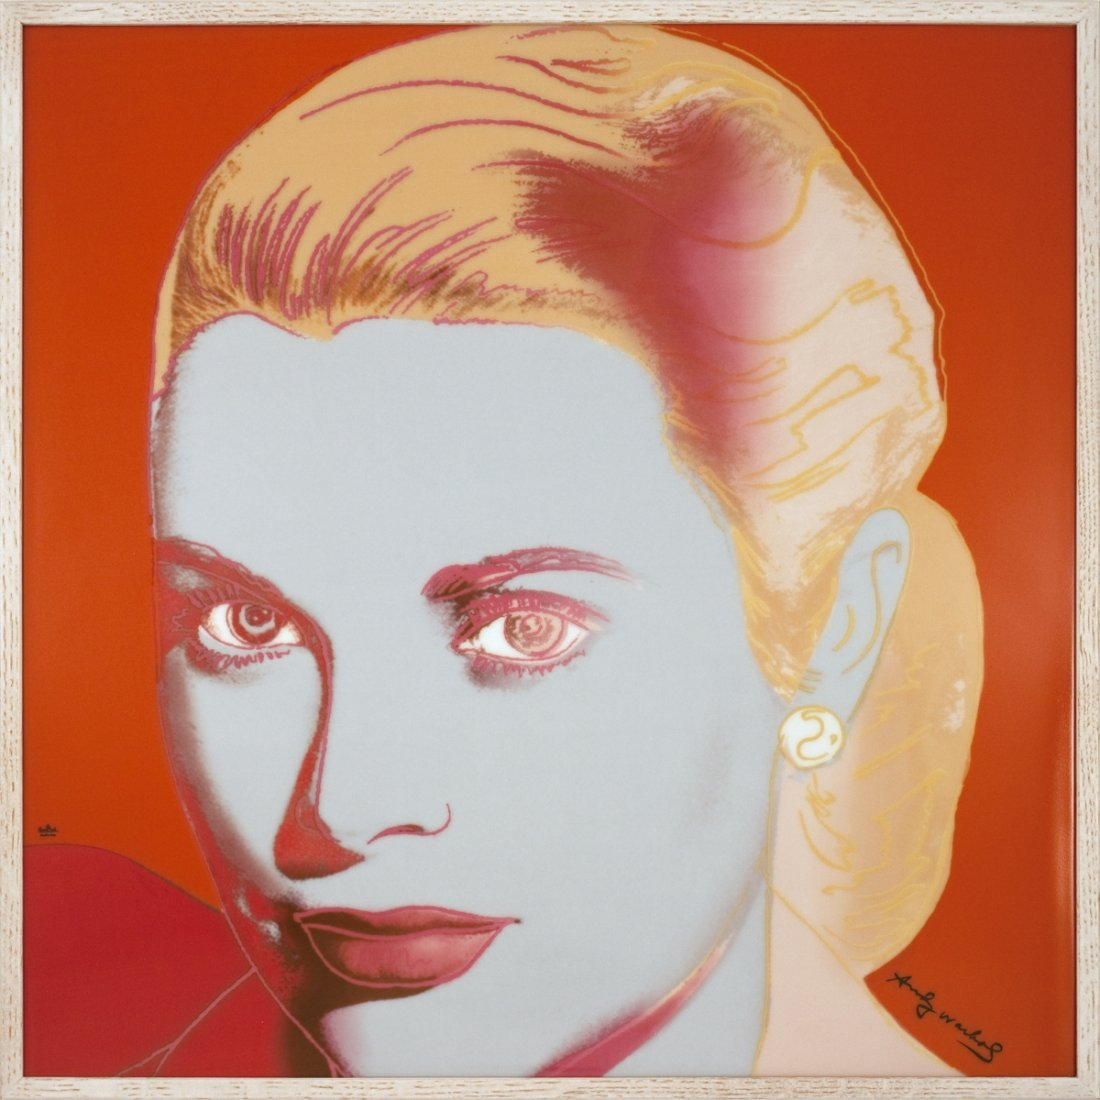 1441: Warhol Grace Kelly (Porcelain) Sculpture